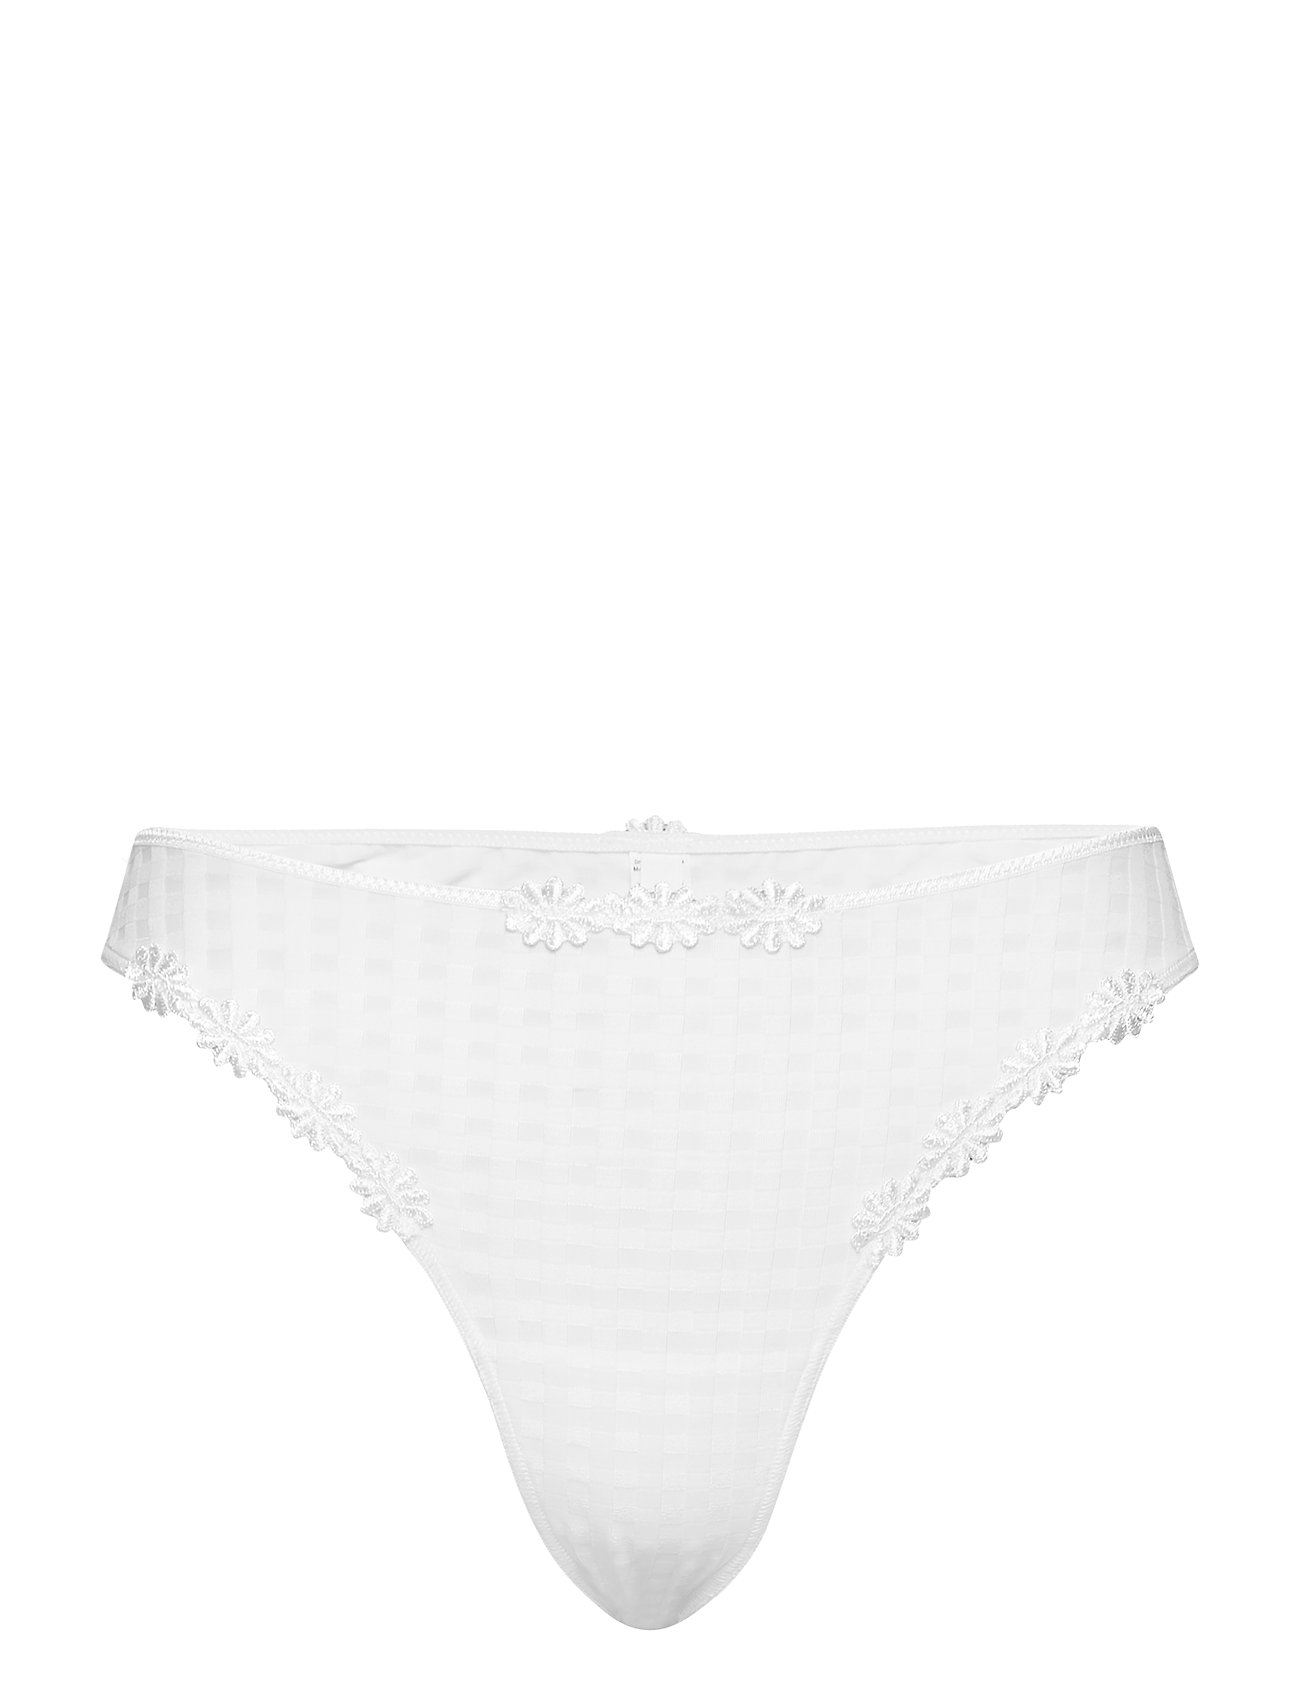 Marie Jo AVERO THONG - NATURAL/OFFWHITE